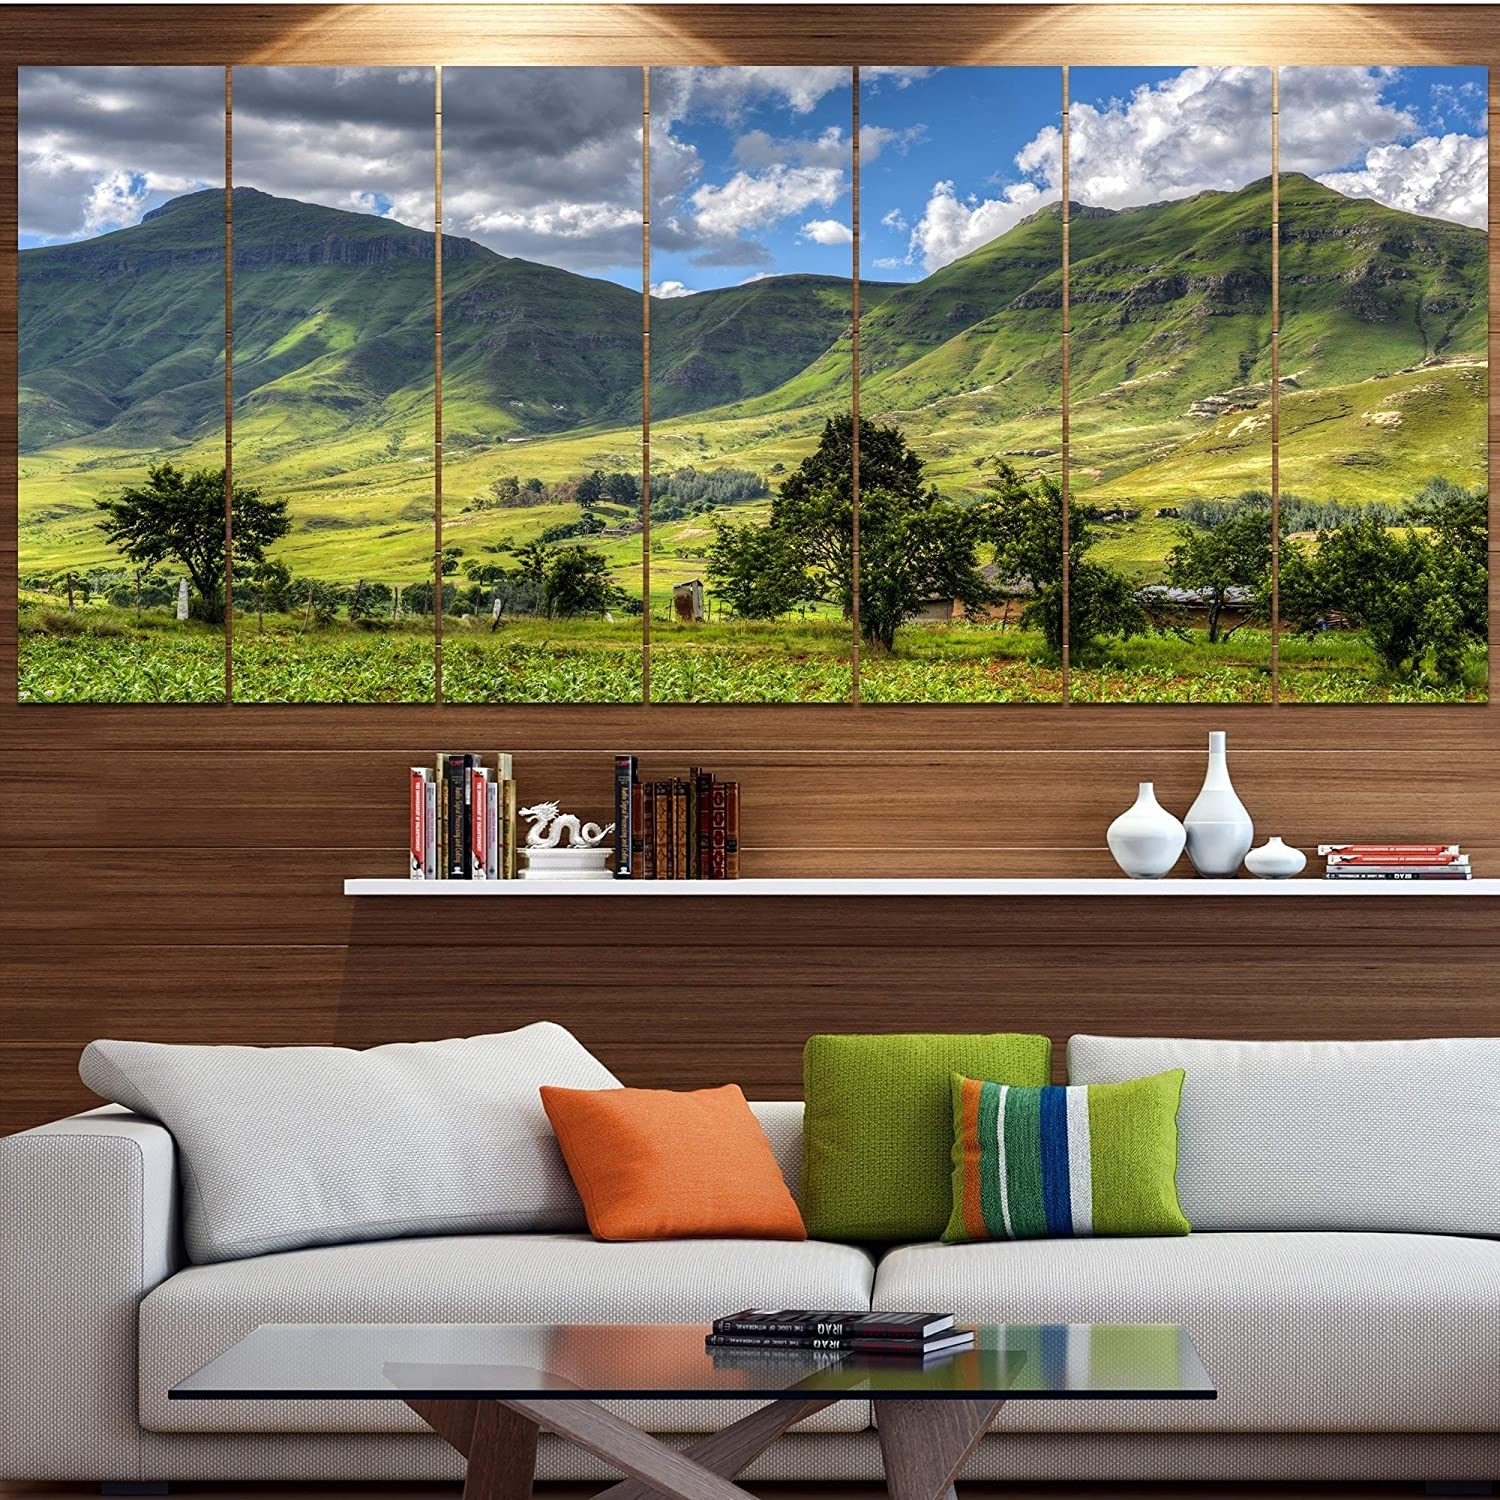 Design Art Designart Lesotho Mountains Panorama Landscape Wall Artwork 83 In Wide X 32 In High 7 Panels Posters Prints